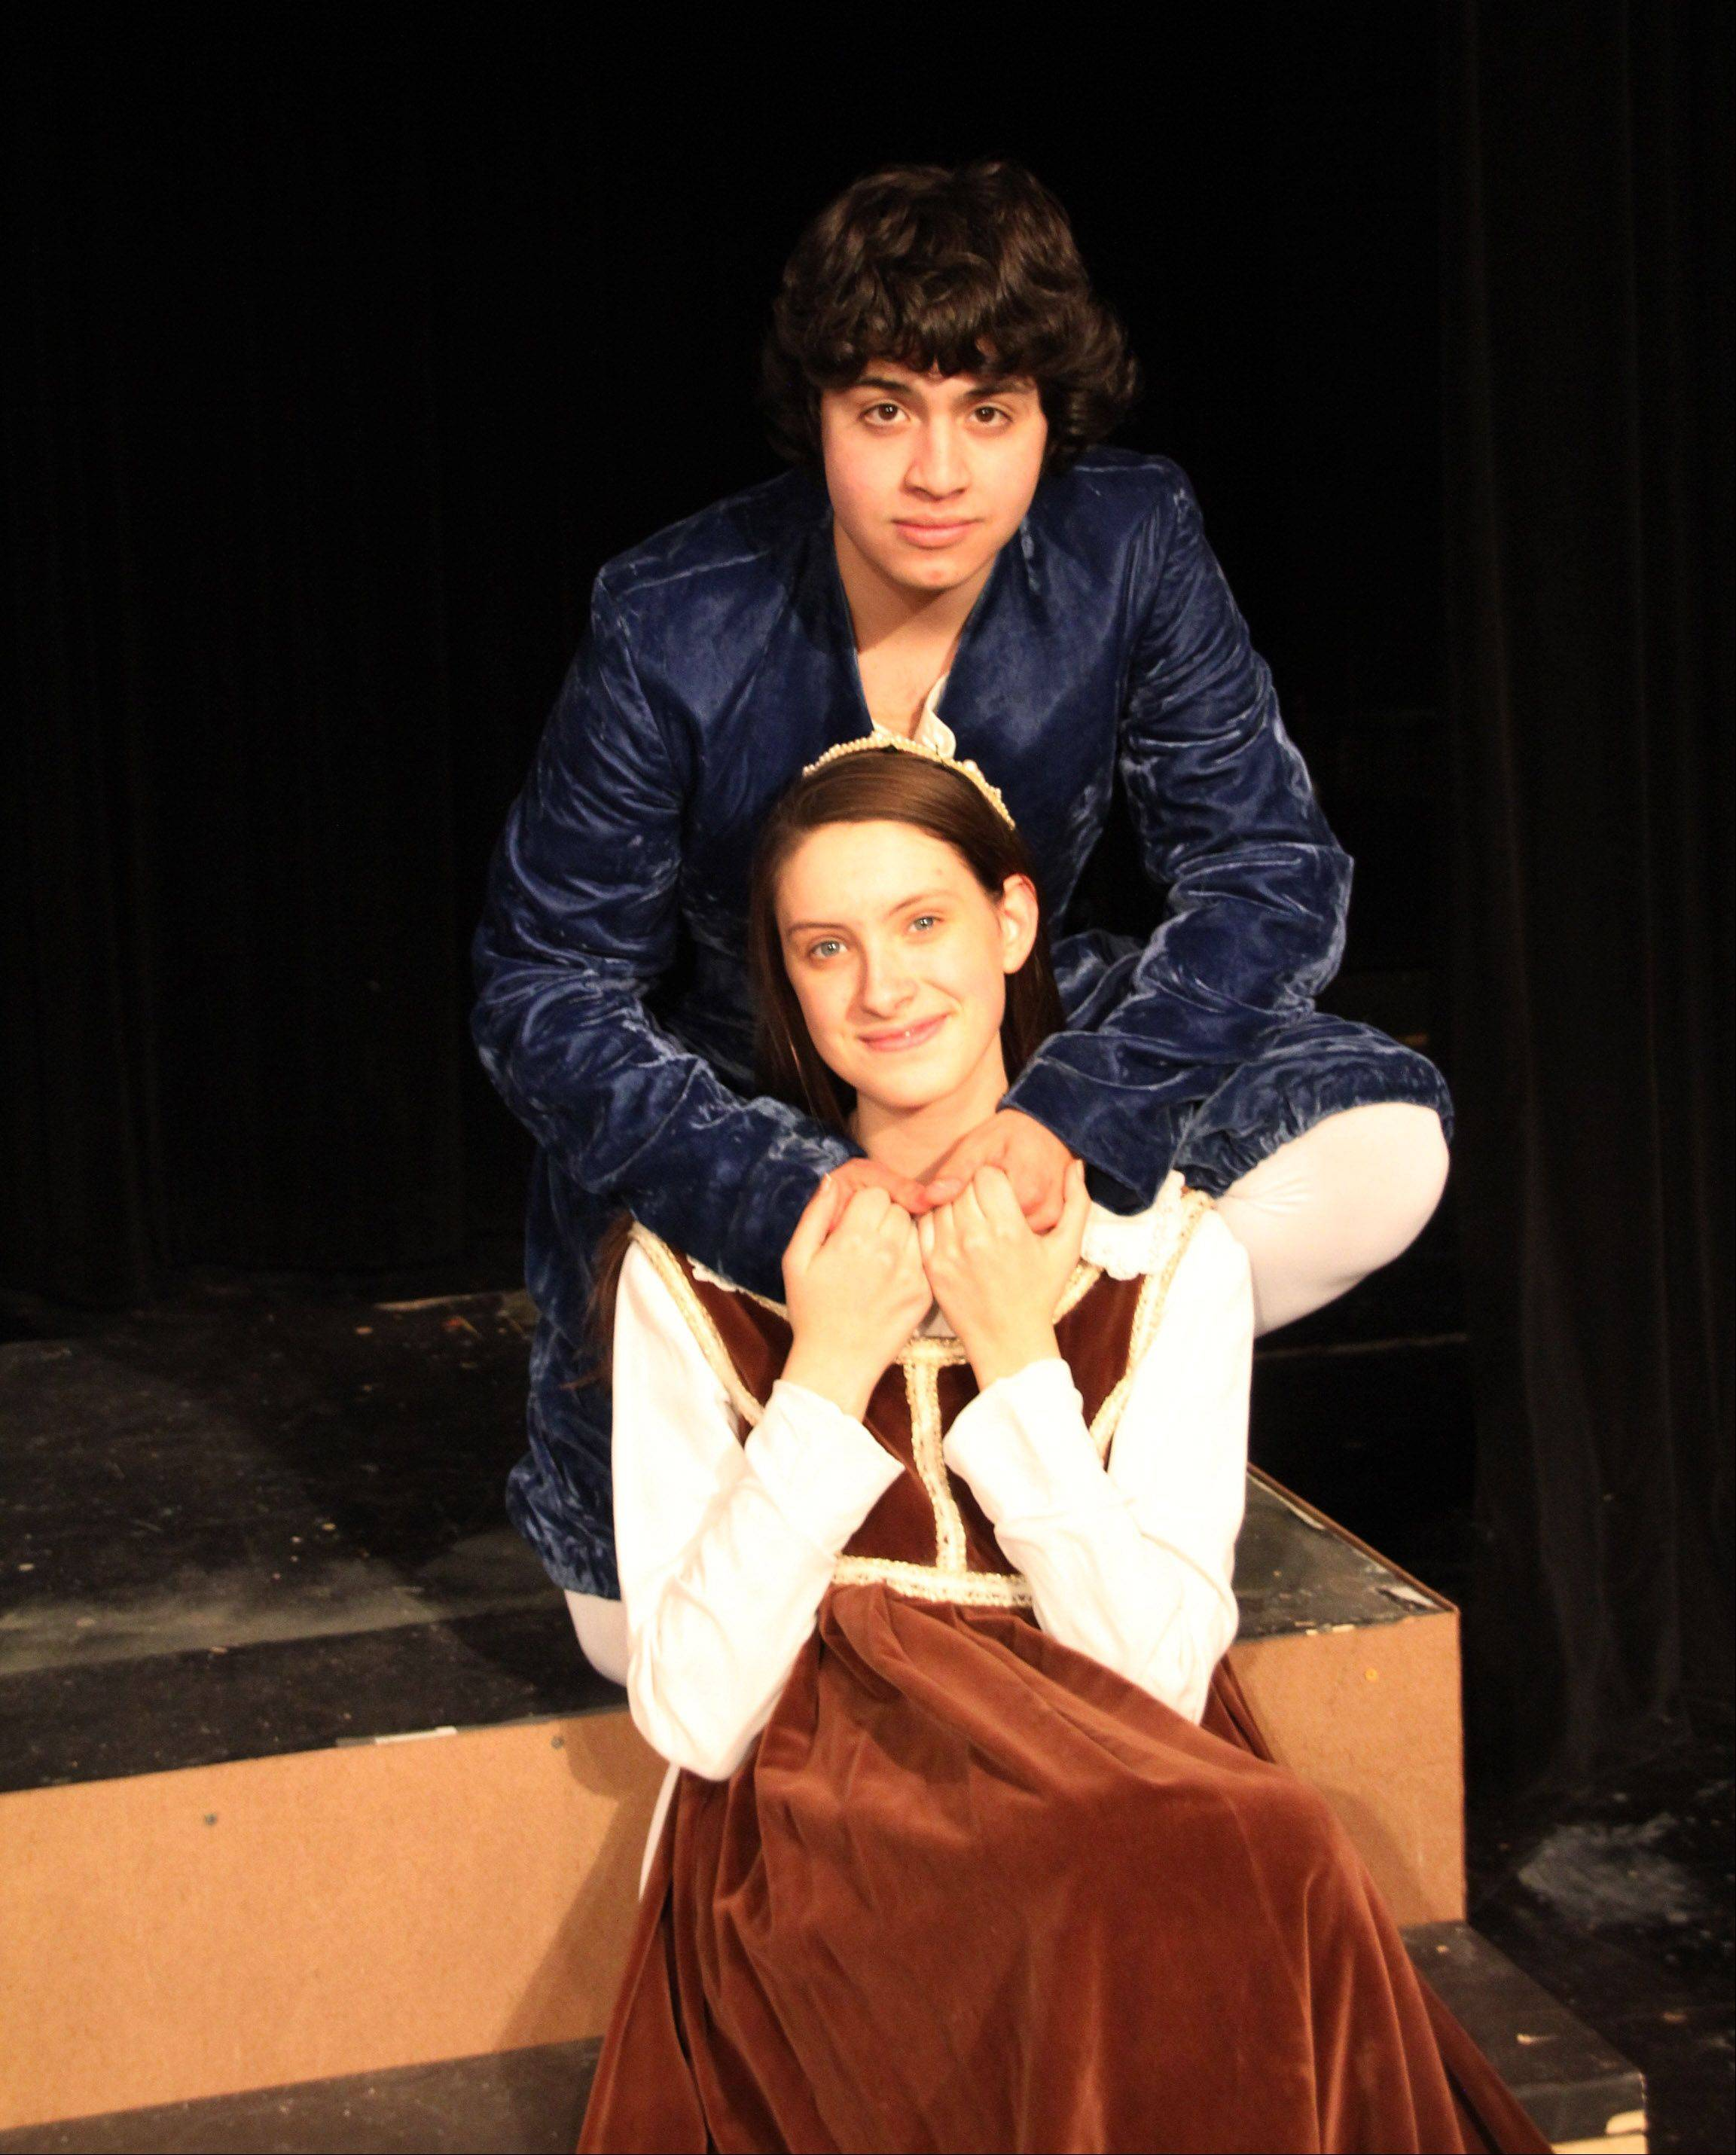 """Romeo and Juliet,"" William Shakespeare's famous love story, will be performed this fall at Mundelein High School. Romeo is played by Oscar Roderigo Araiza Bravo and Juliet is played by Emma Morton."